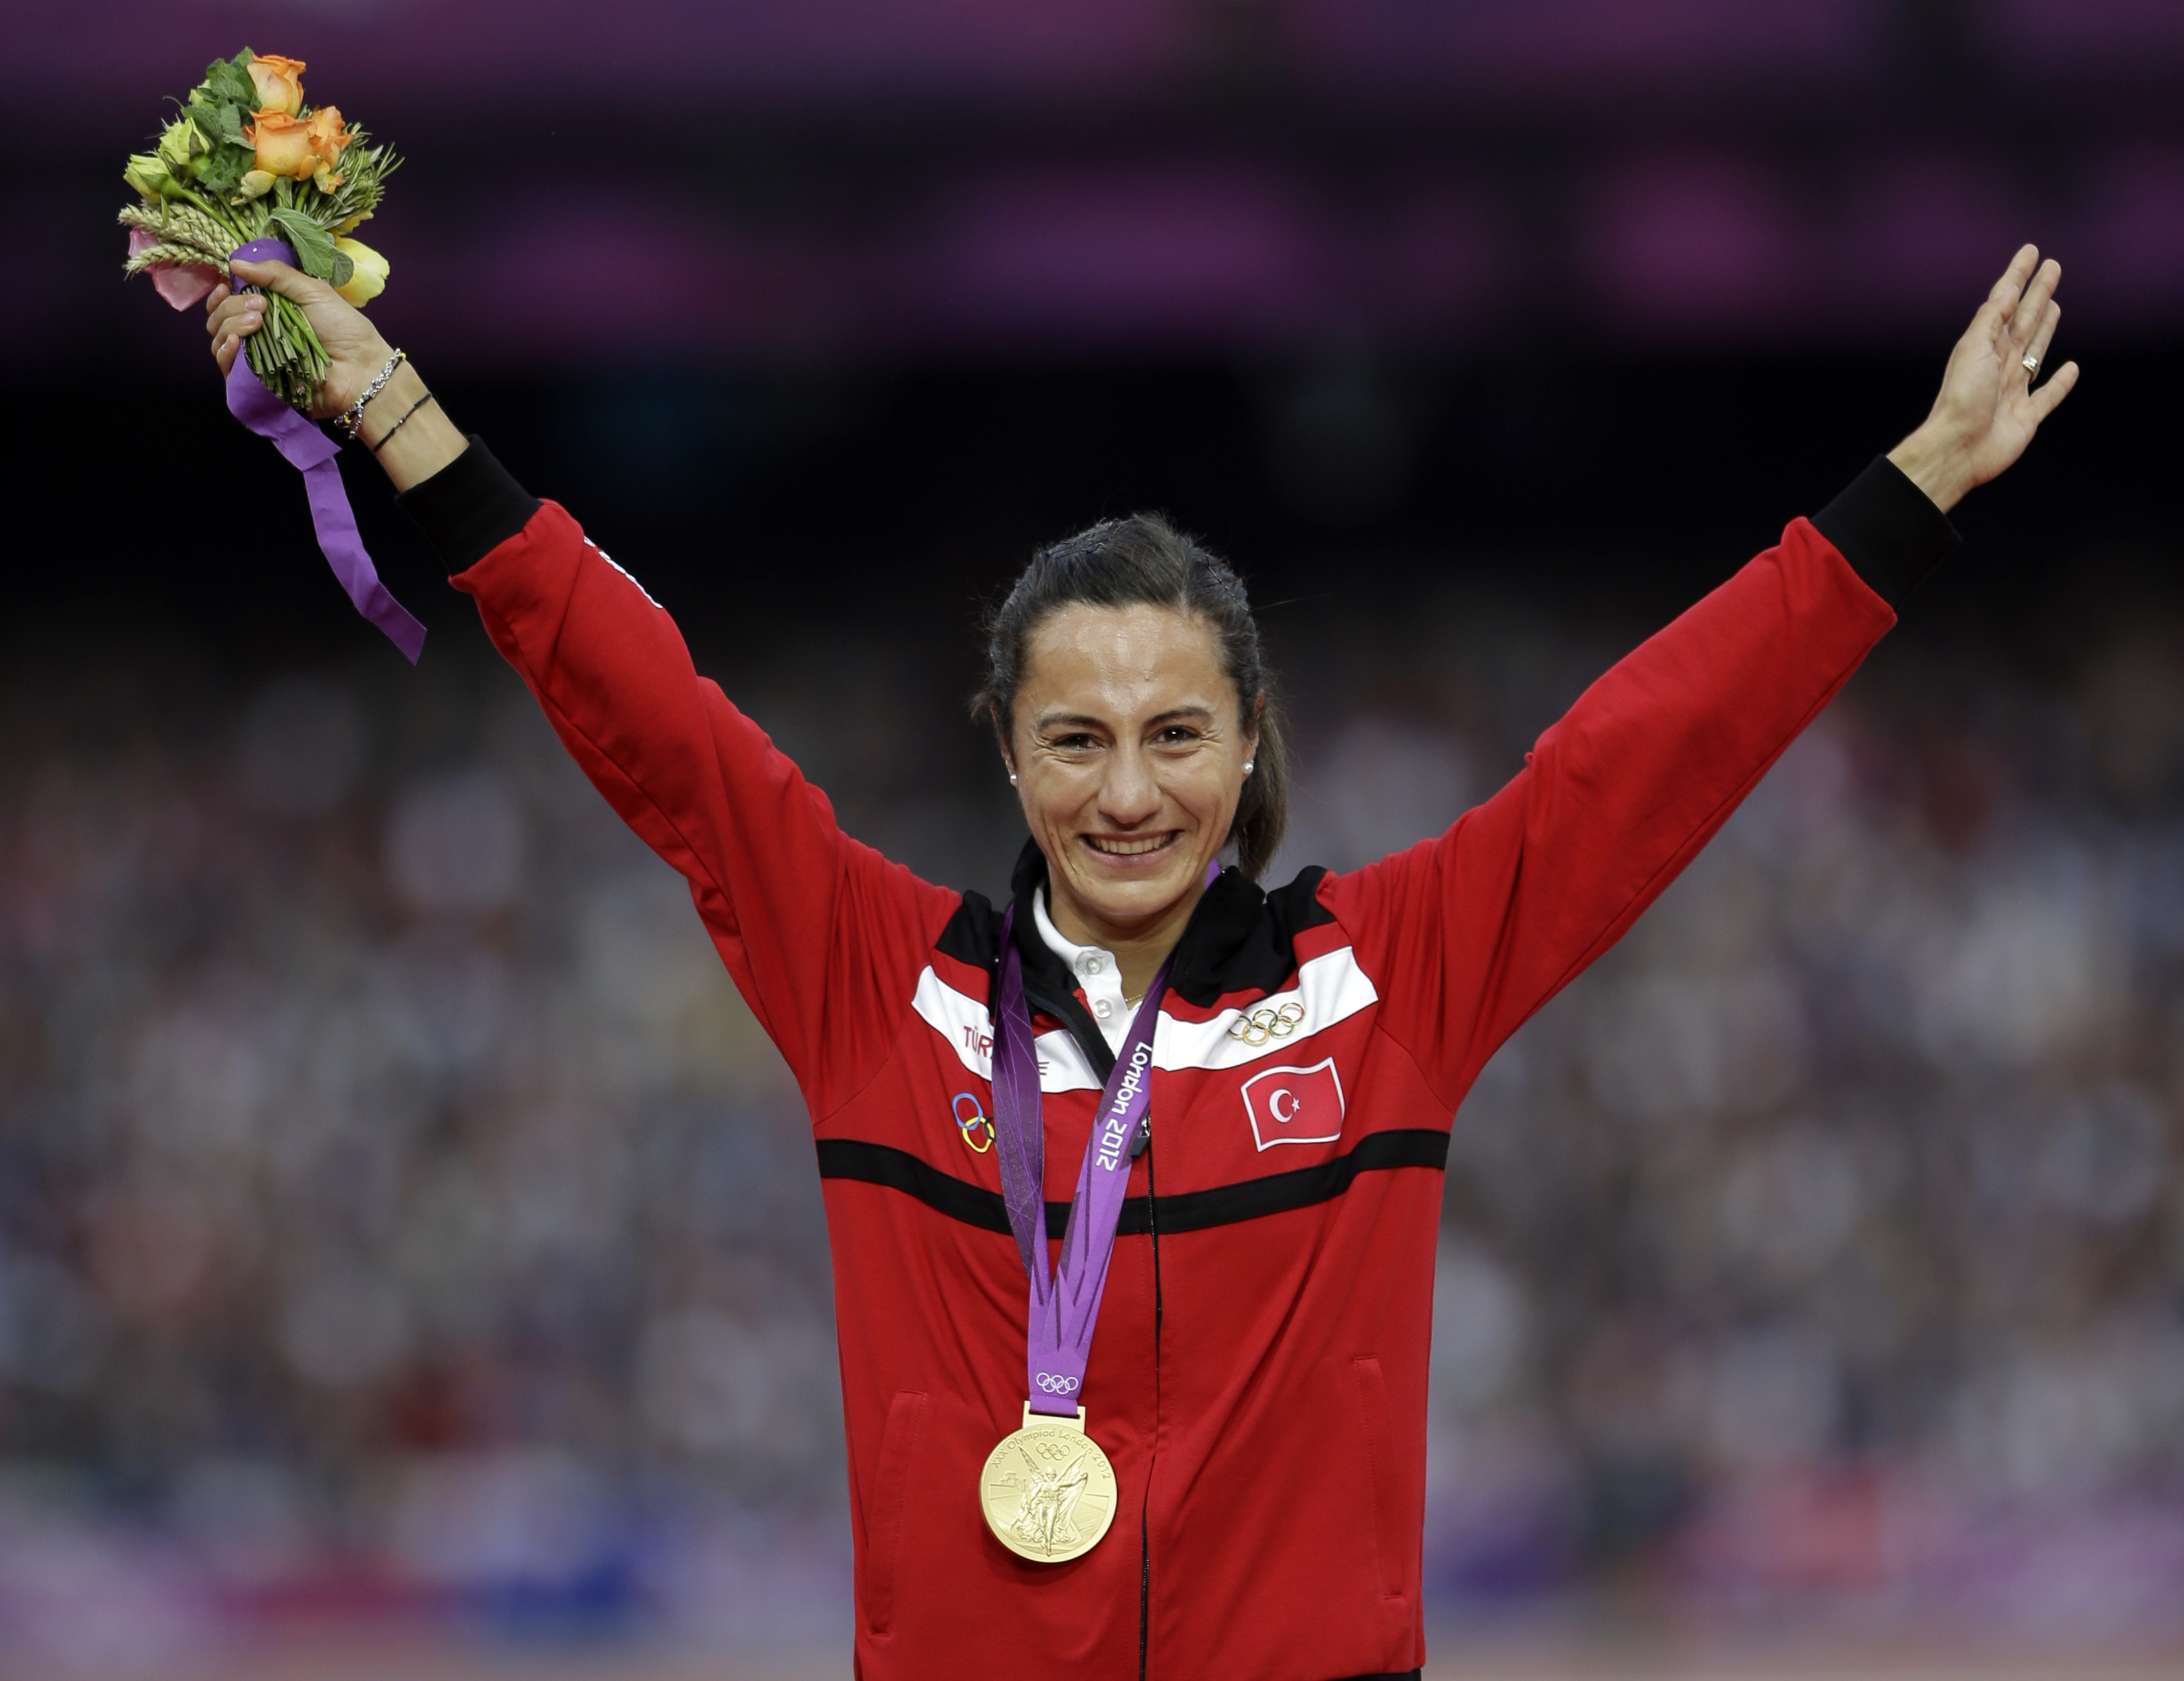 FILE - In this Aug. 11, 2012 file photo Turkey's Asli Cakir Alptekin poses with her gold medal for the women's 1500-meter during the athletics in the Olympic Stadium at the 2012 Summer Olympics, London. Olympic 1,500 meters champion Asli Cakir Alptekin of